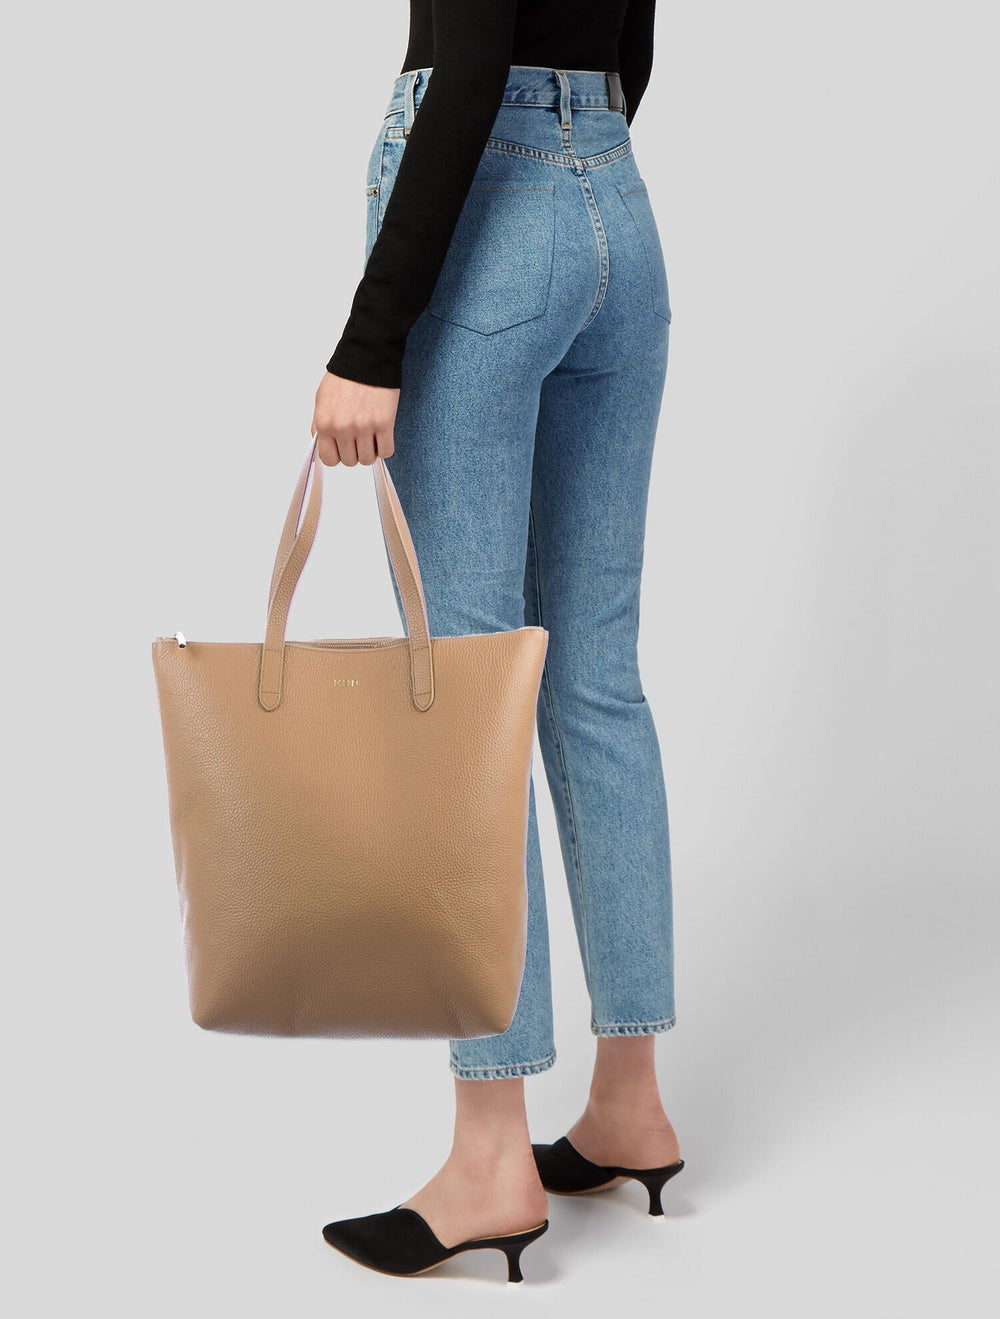 Cuyana Large Leather Tote Brown - image 2